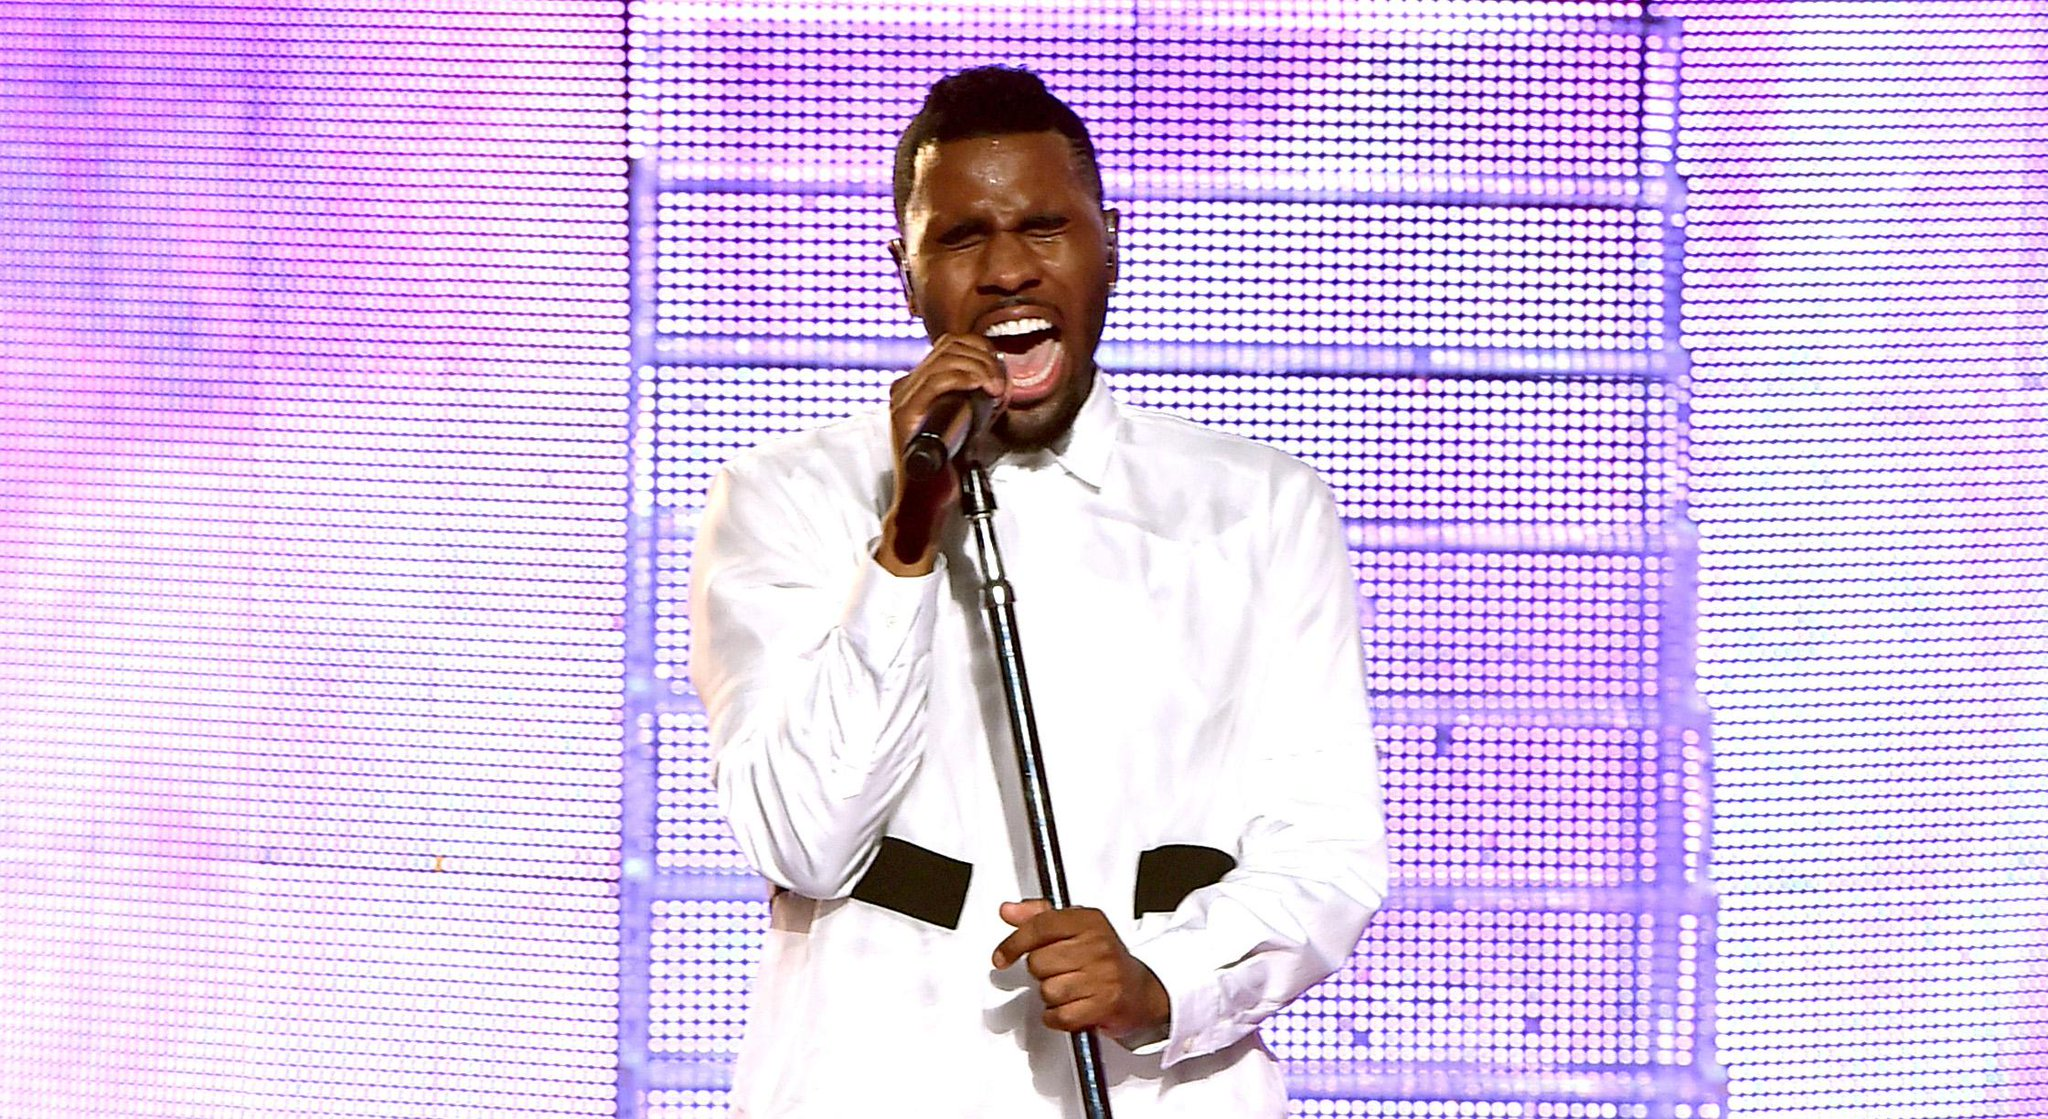 RT @JustJared: .@jasonderulo sounded amazing during his #iHeartAwards performance! Check it out here: http://t.co/1KSZxDwnCH http://t.co/Mw…